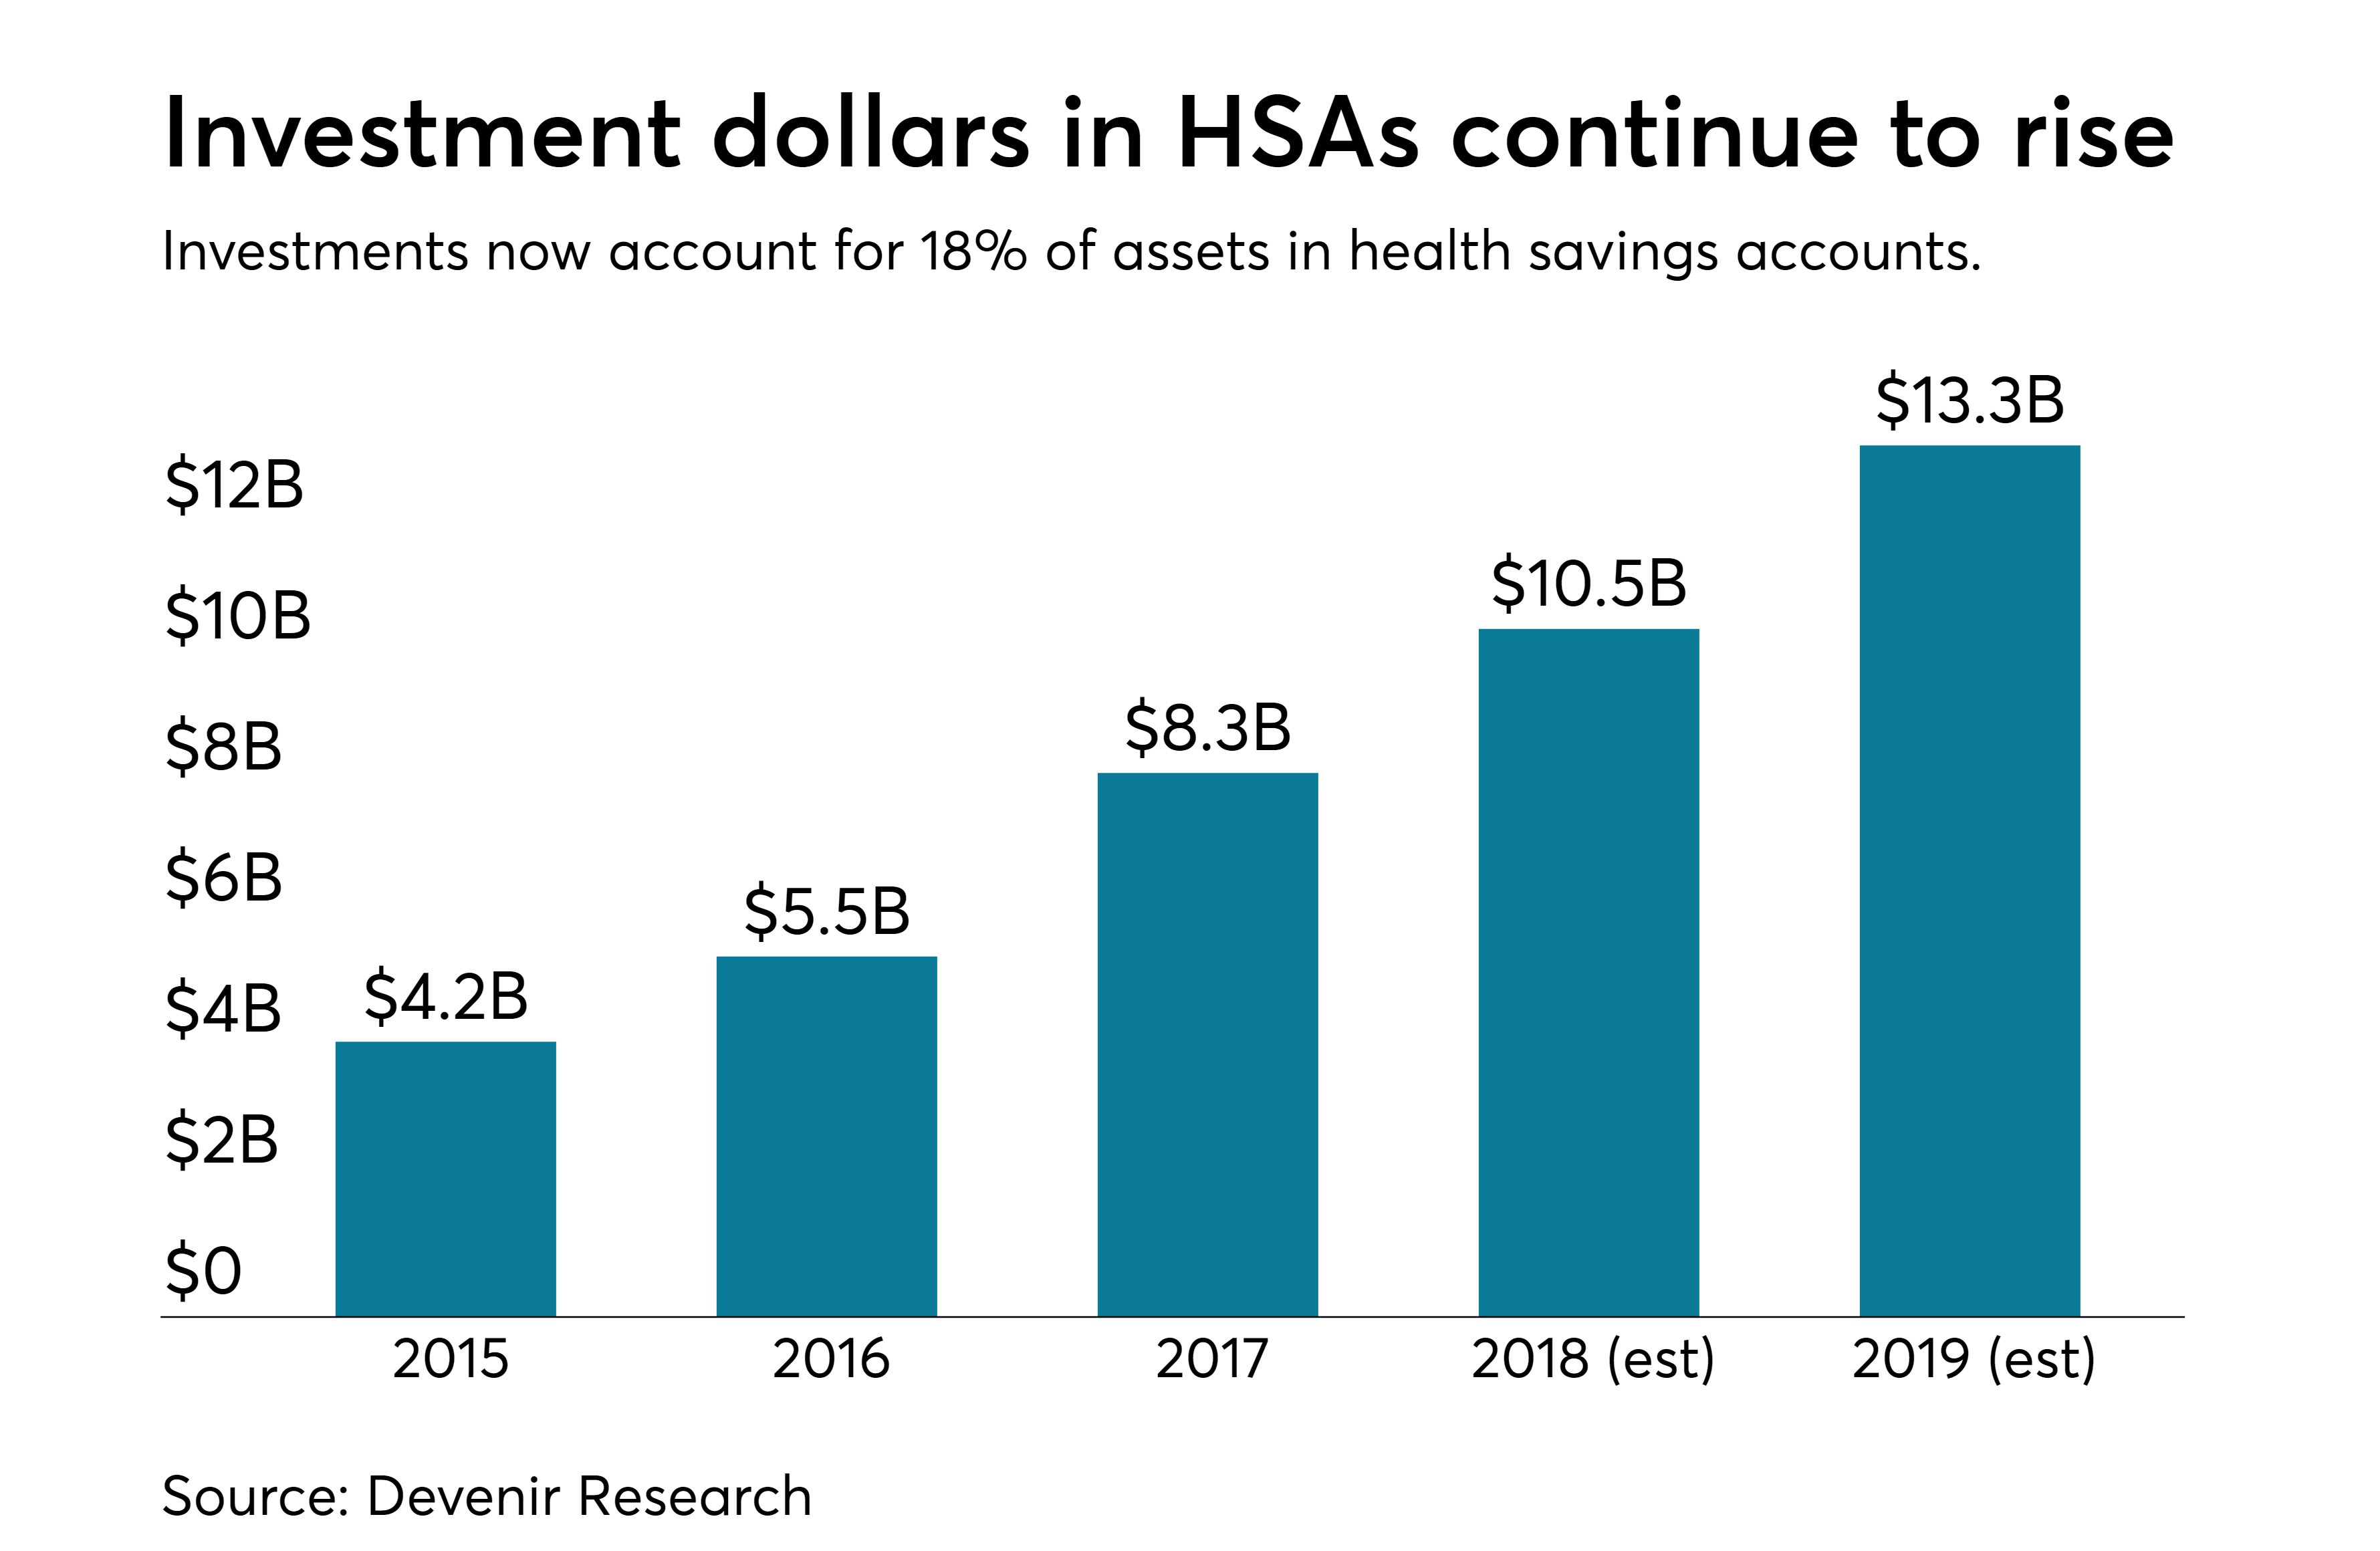 https://assets.sourcemedia.com/d8/31/c0fded504aac81ca172685bc2cb5/hsa-investment-assets-0518.png